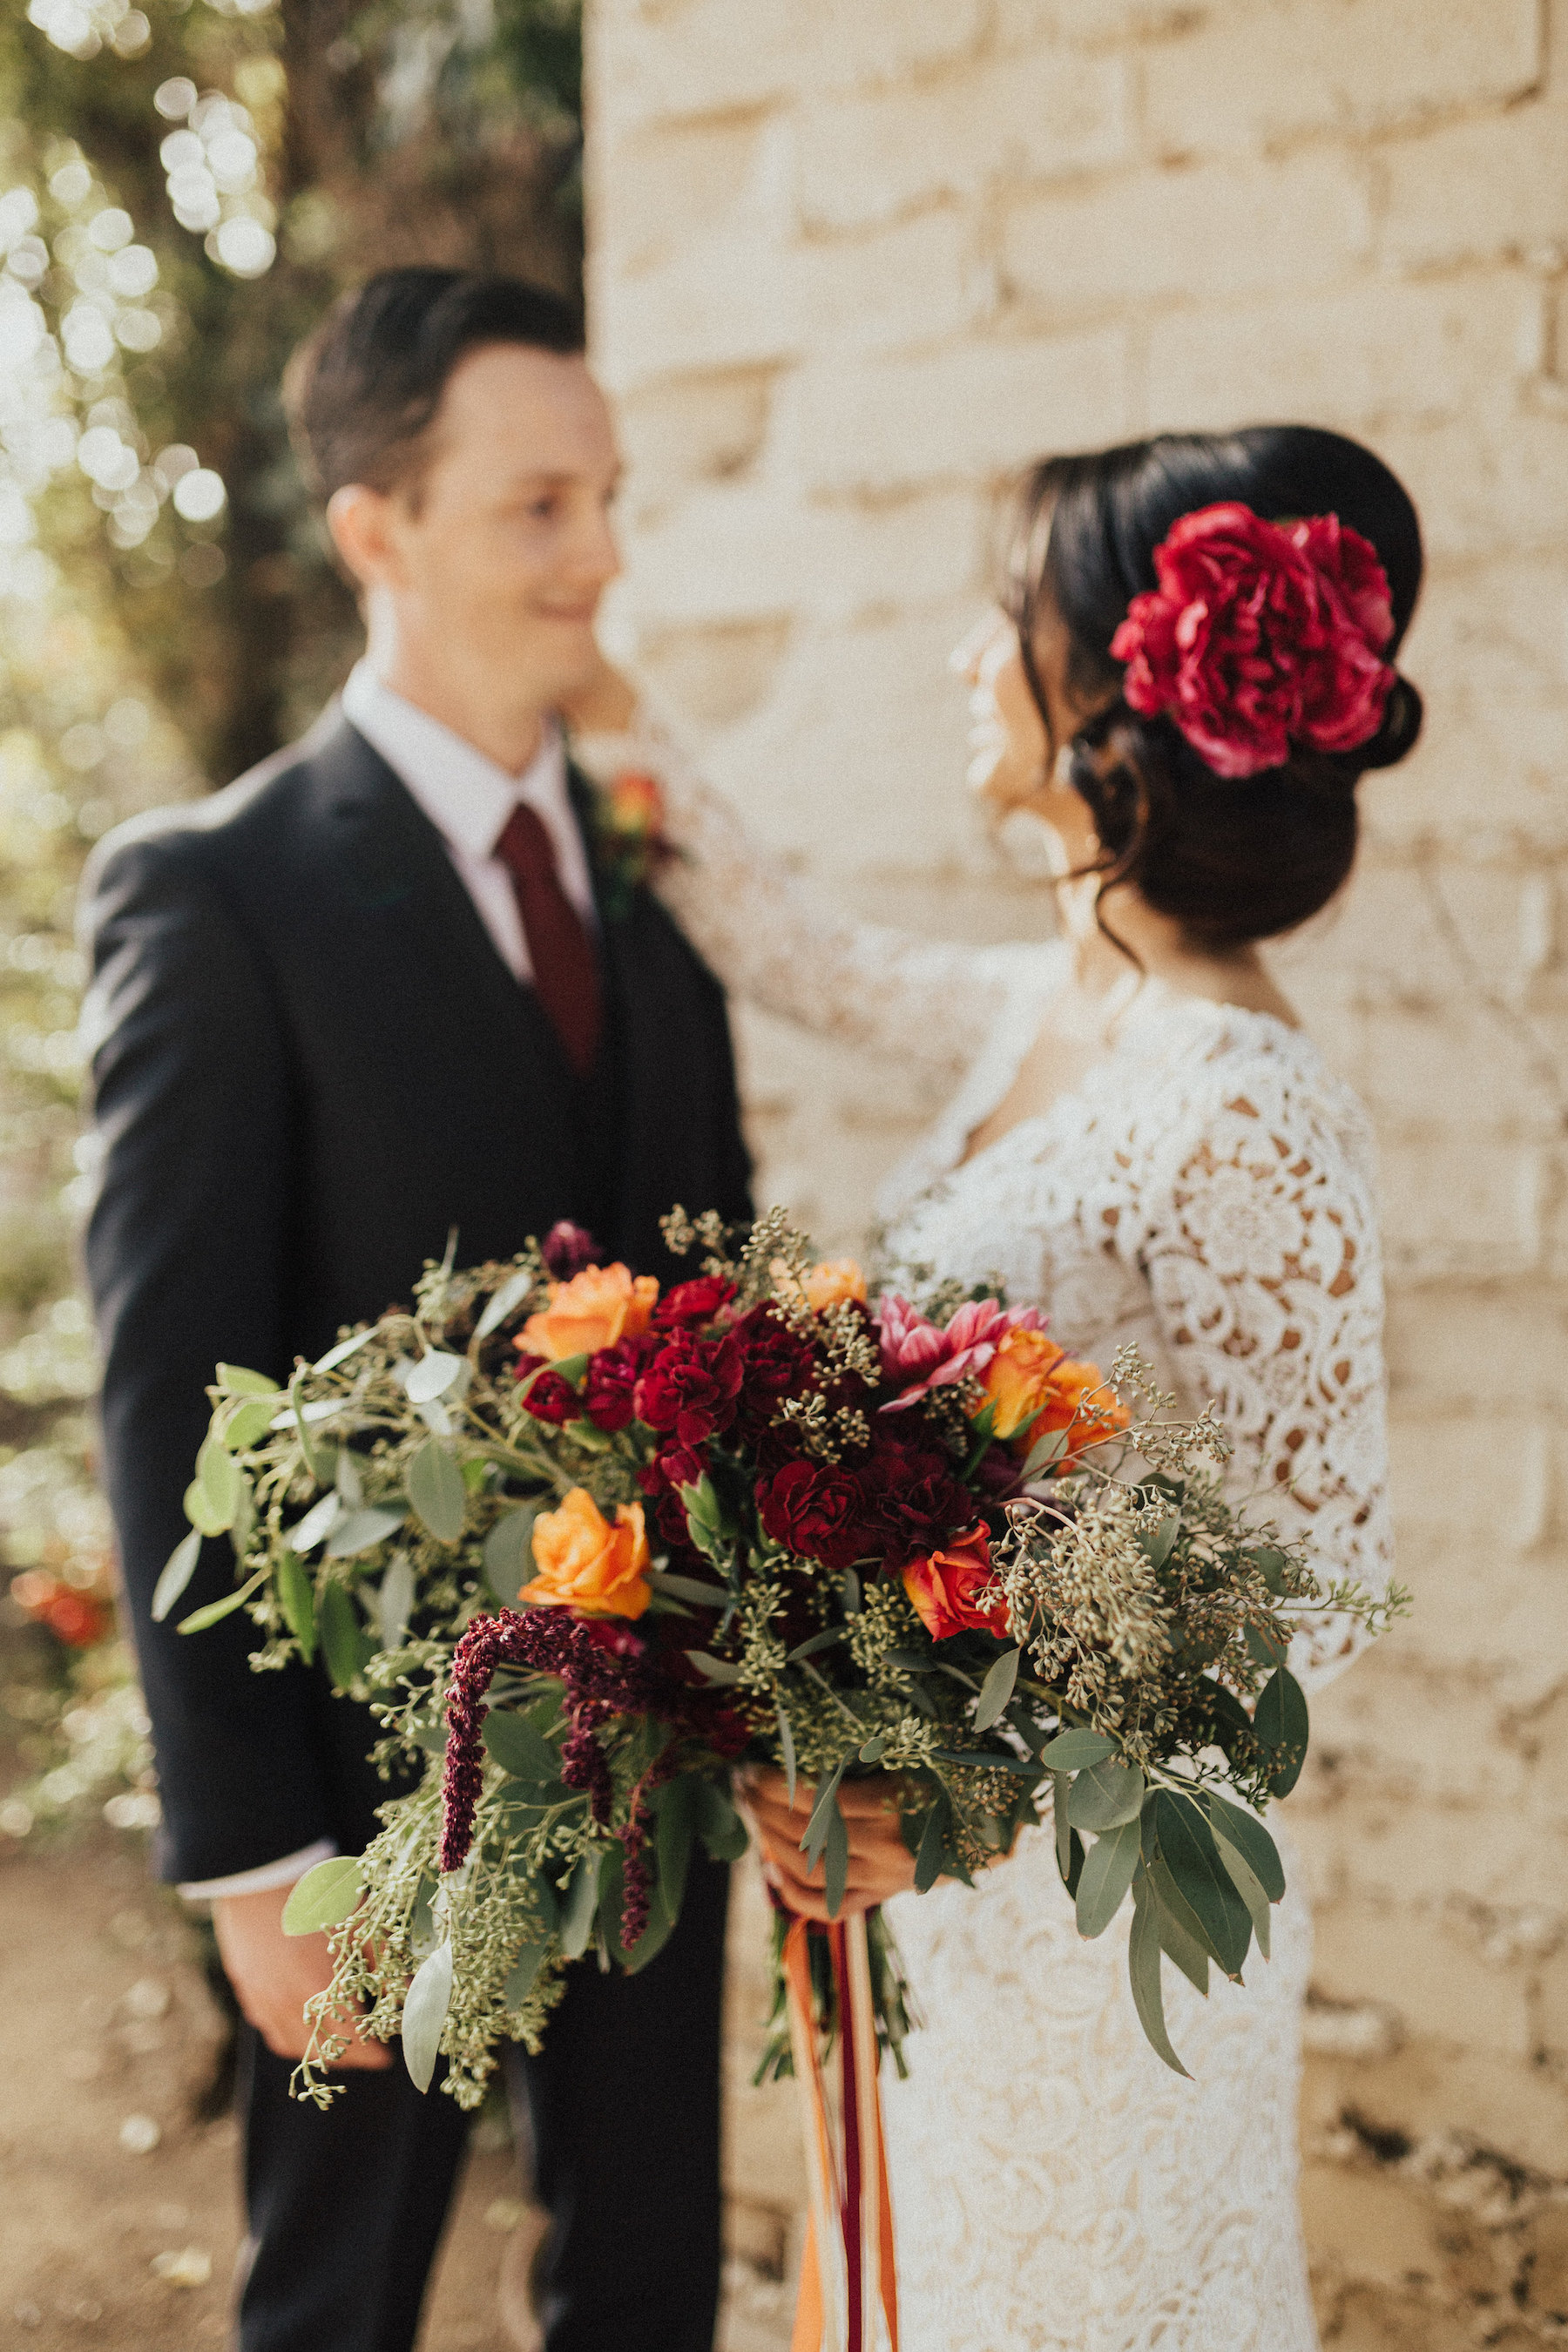 Venue- The Edward Dean Museum, Cherry Valley, CA; Photographer- Ed Paulella; Catering- K & A Catering; Florals- Cherie Riley Weddings; Hair & Makeup- Kelly Scripps